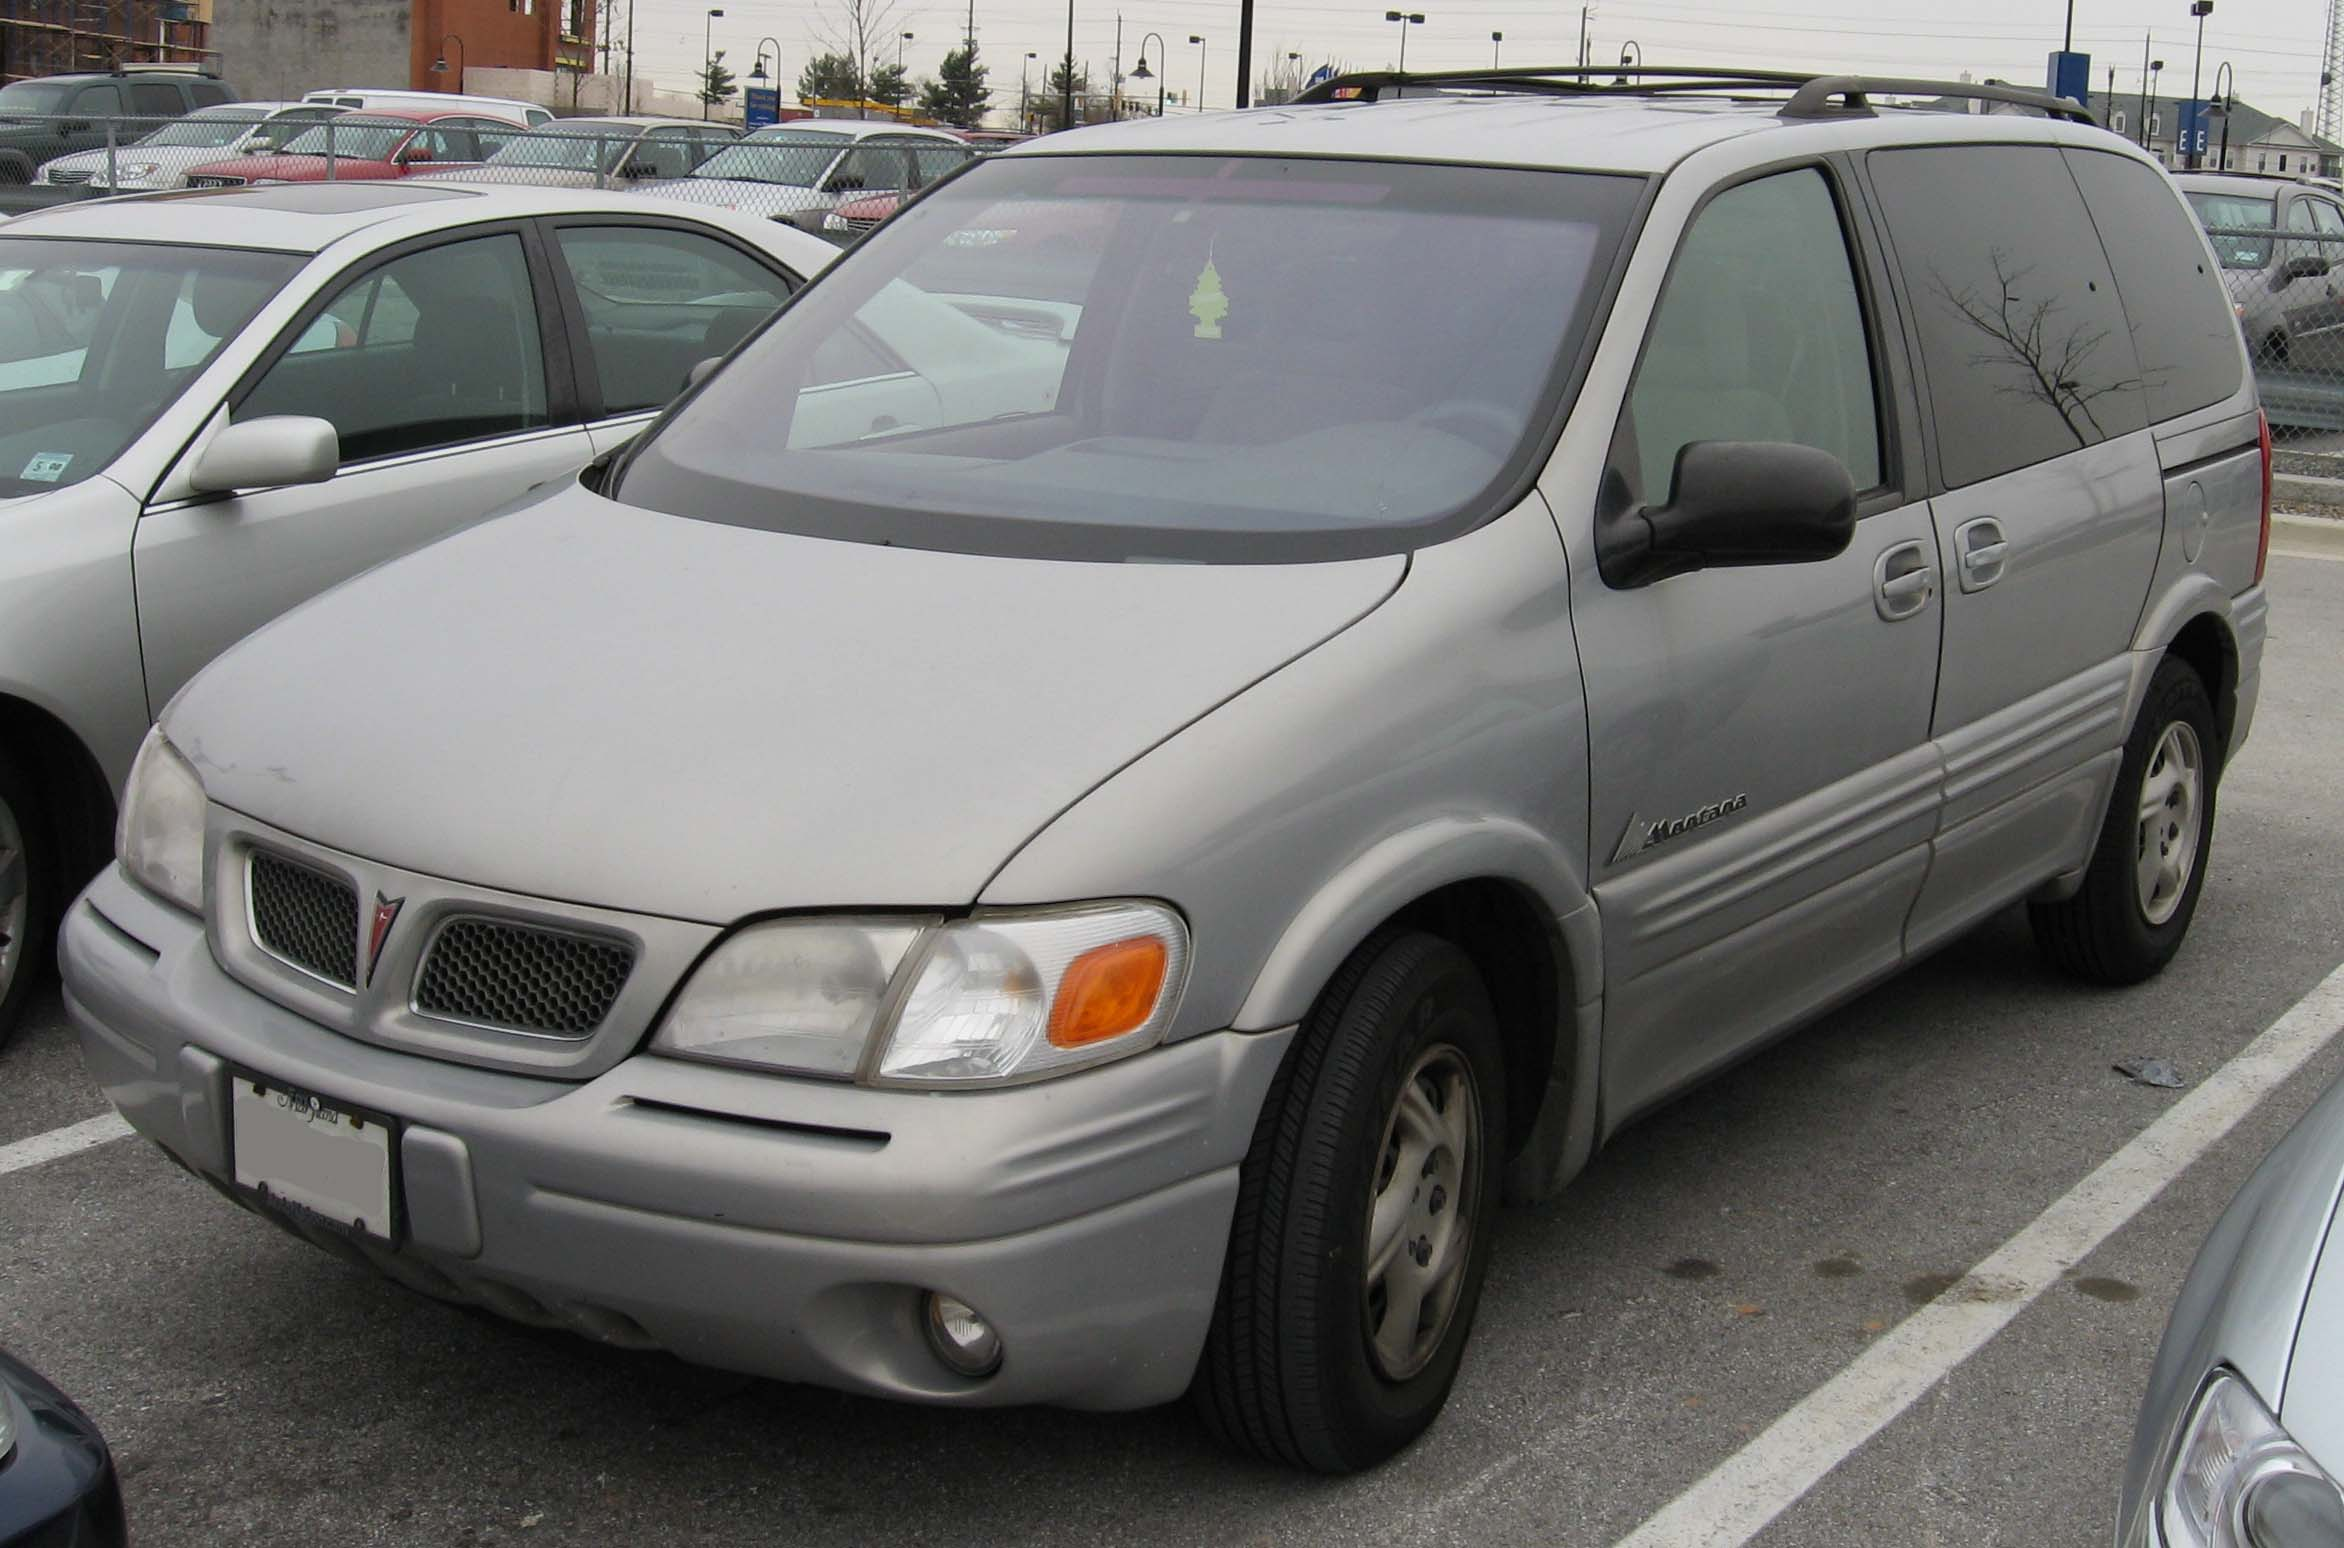 Pontiac Montana photo 02